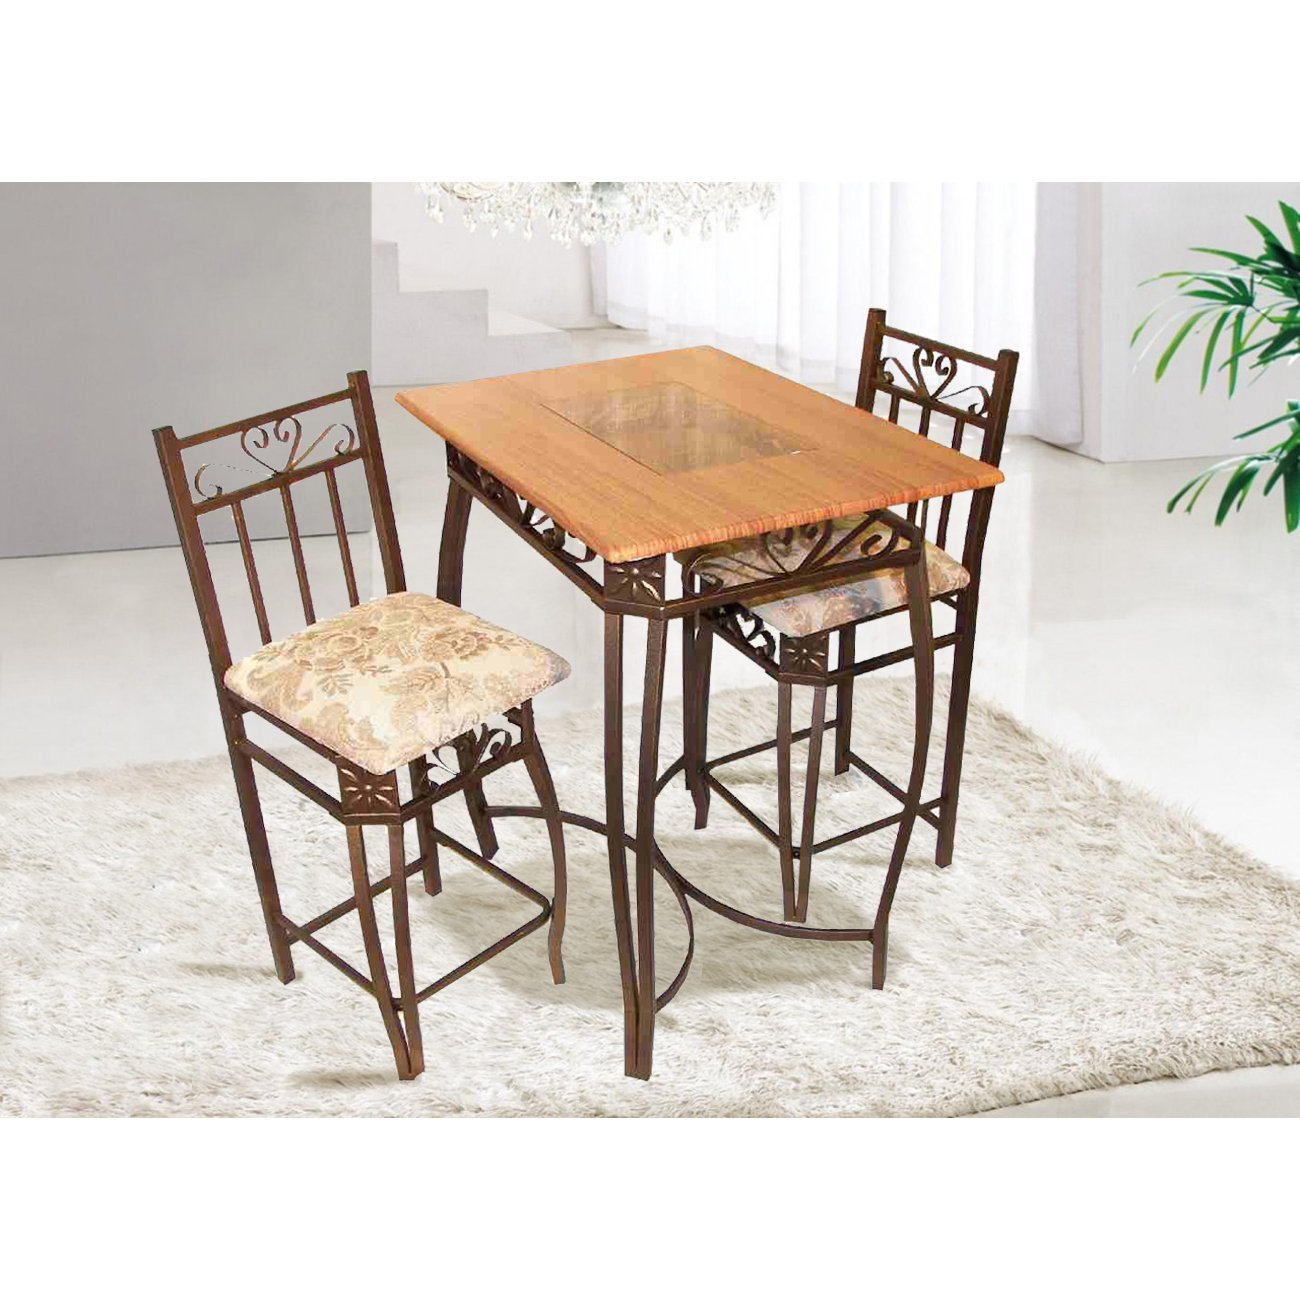 Home Source Industries Barcelona Bronze Metal Counter Bistro Set with Light Wood Table Top and 2 Chairs by Home Source Industries (Image #5)